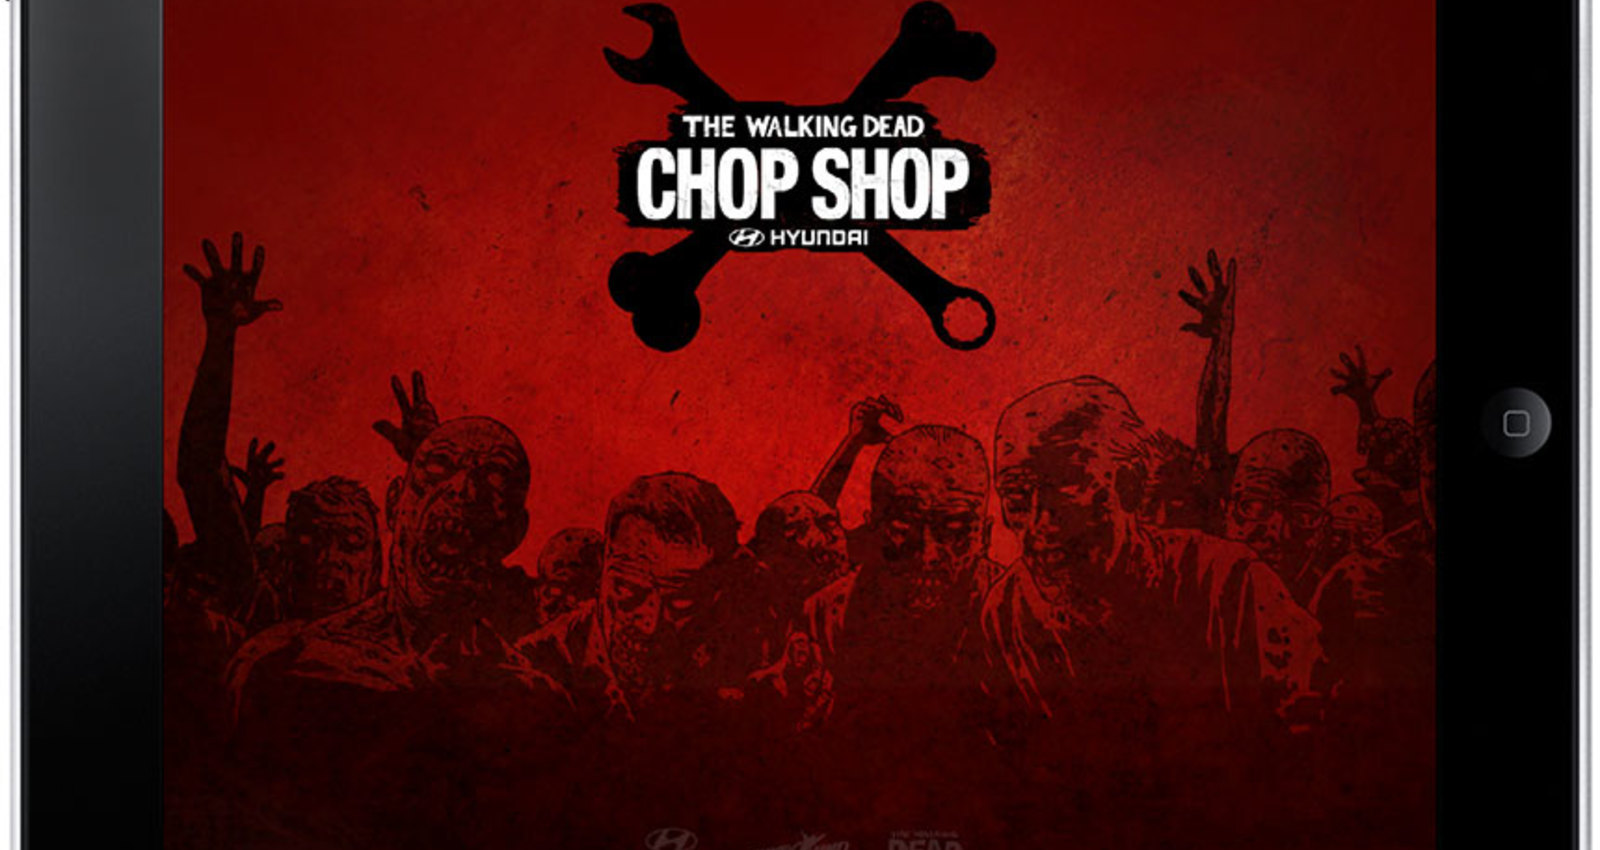 The Walking Dead Chop Shop